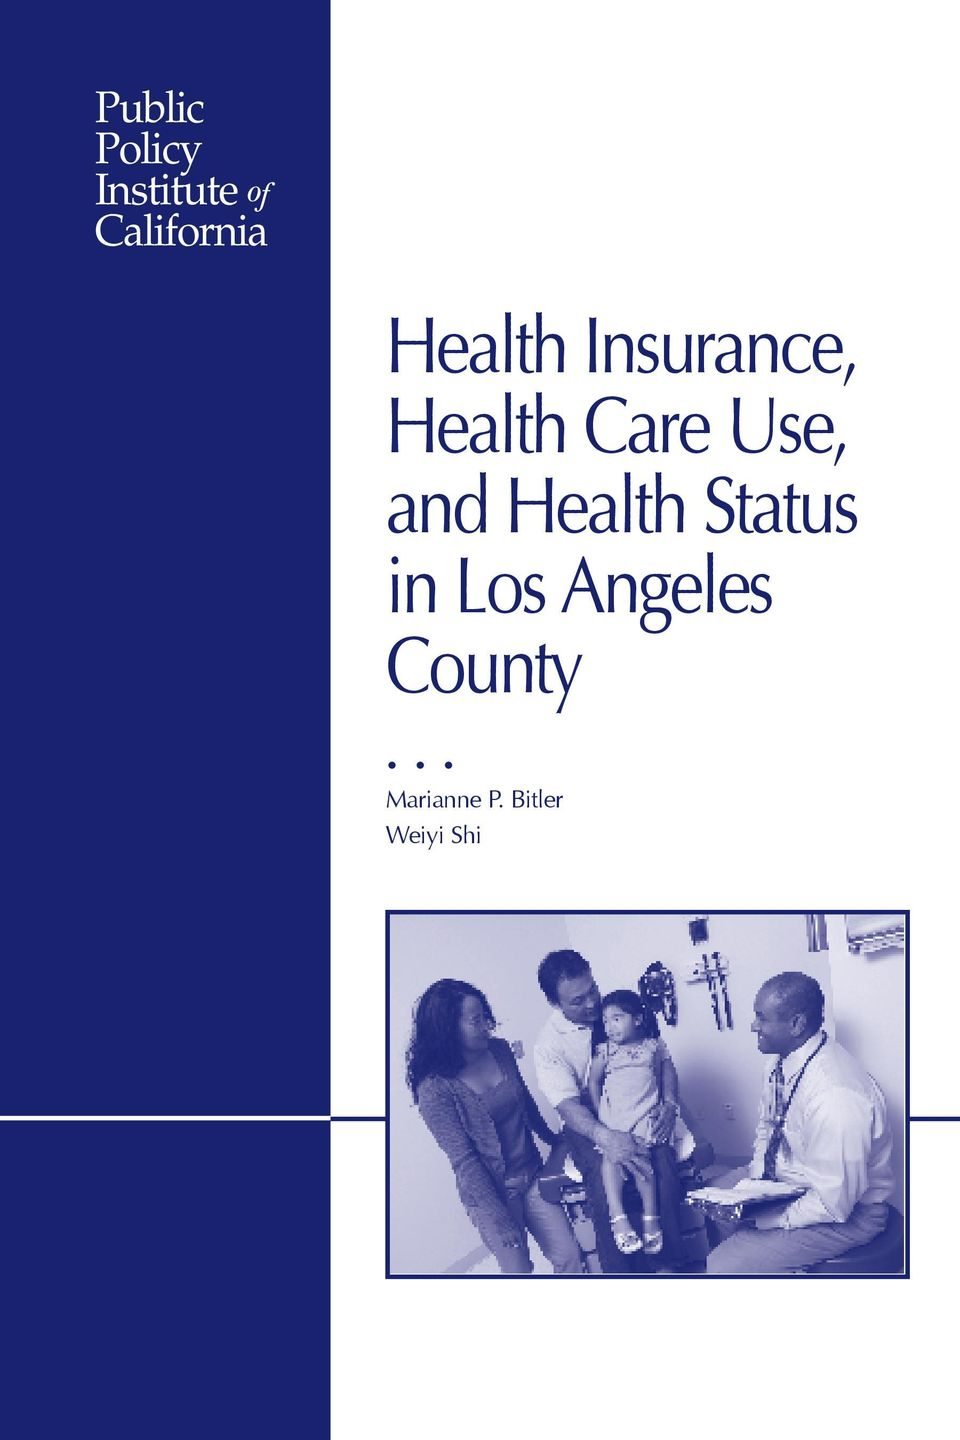 Care Use, and Health Status in Los